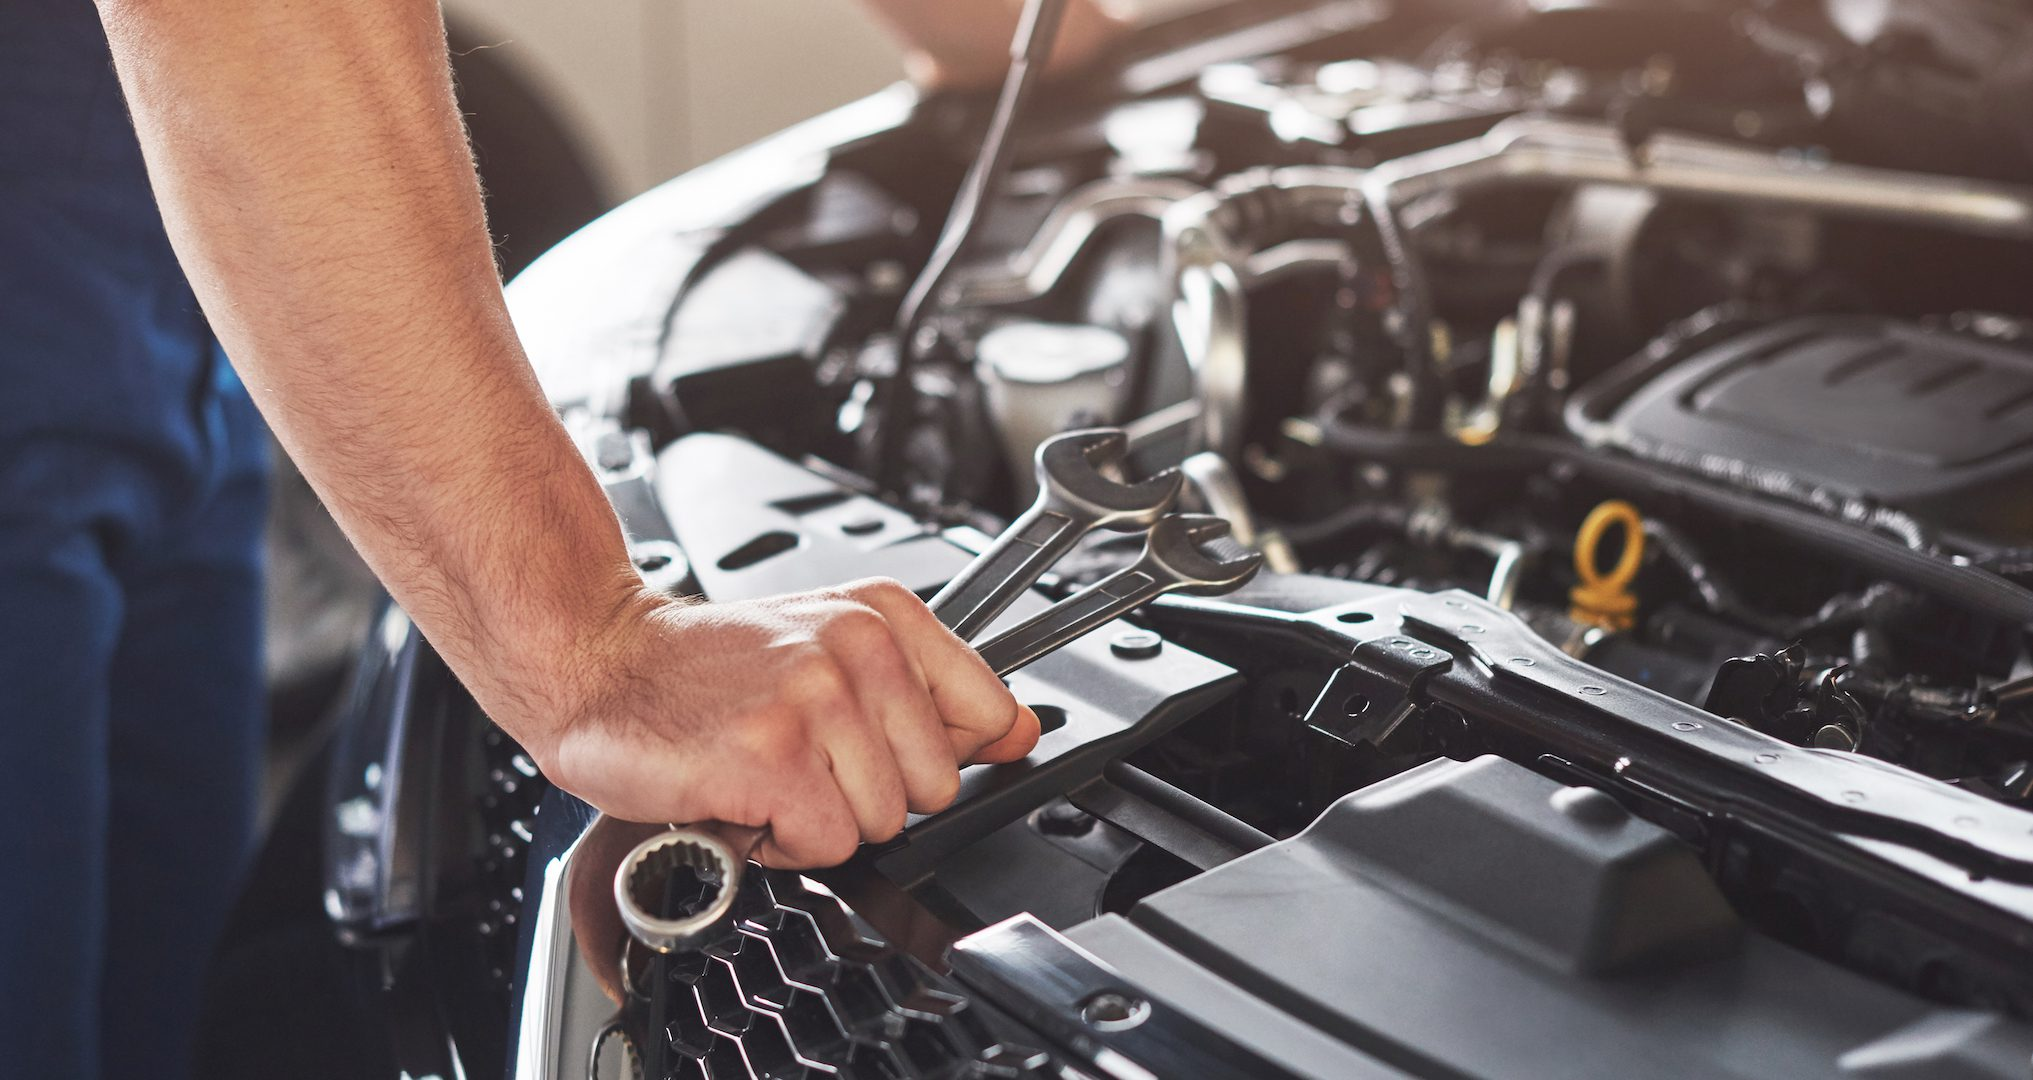 man leaning over car working on engine